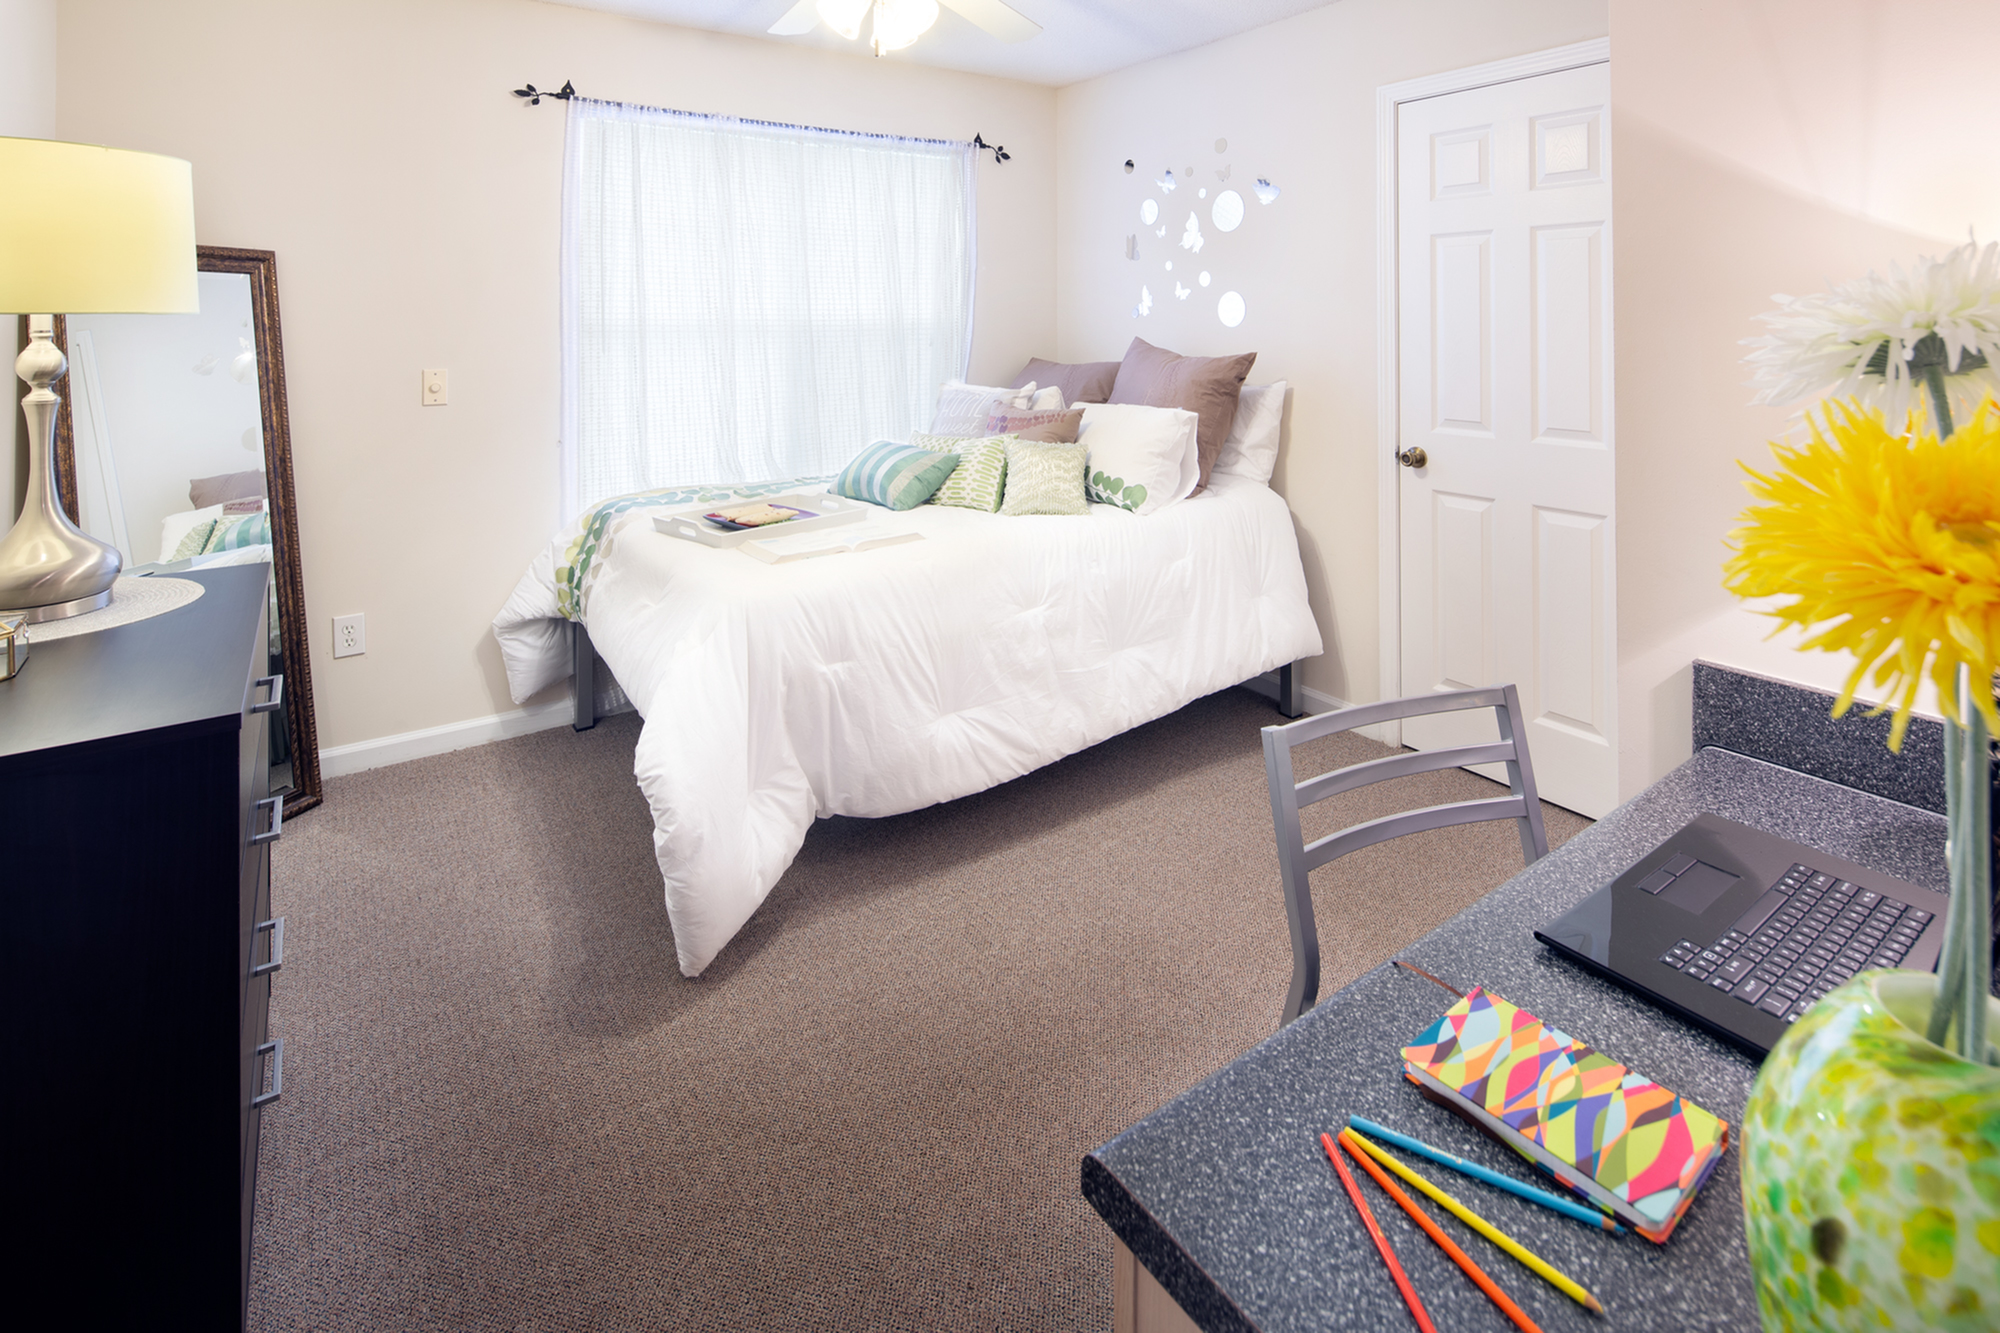 furnished bedroom with bed, dresser, desk, curtains, and spacious closet